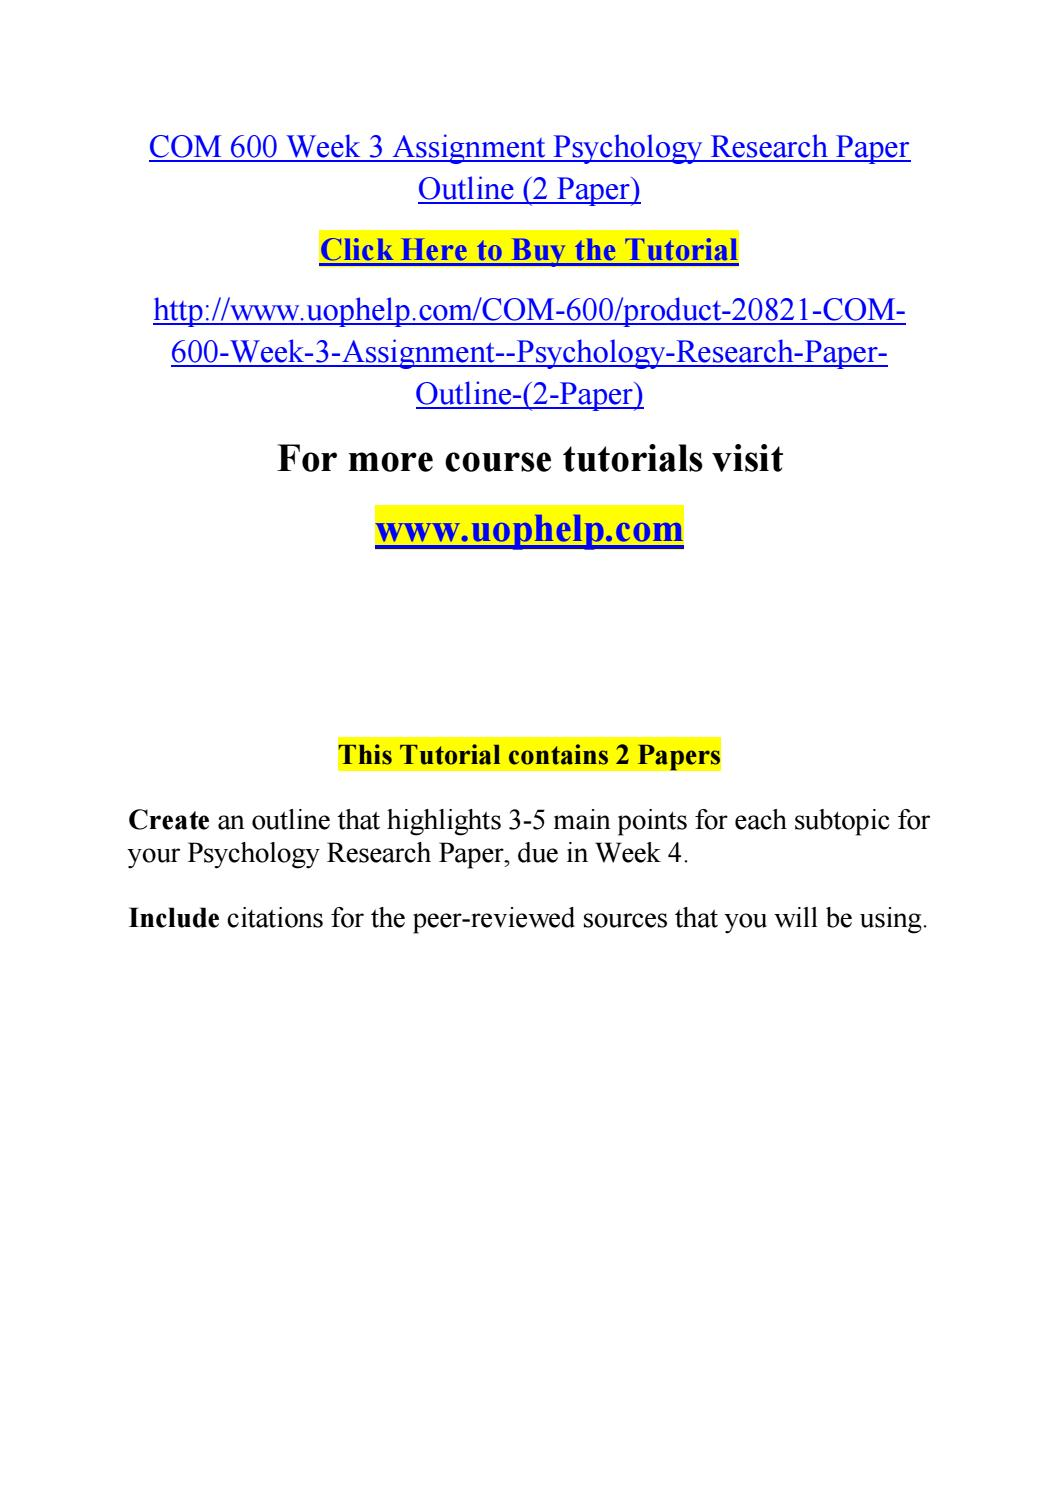 007 Psychology Research Paper Outline Com Page 1 Striking 600 Com/600